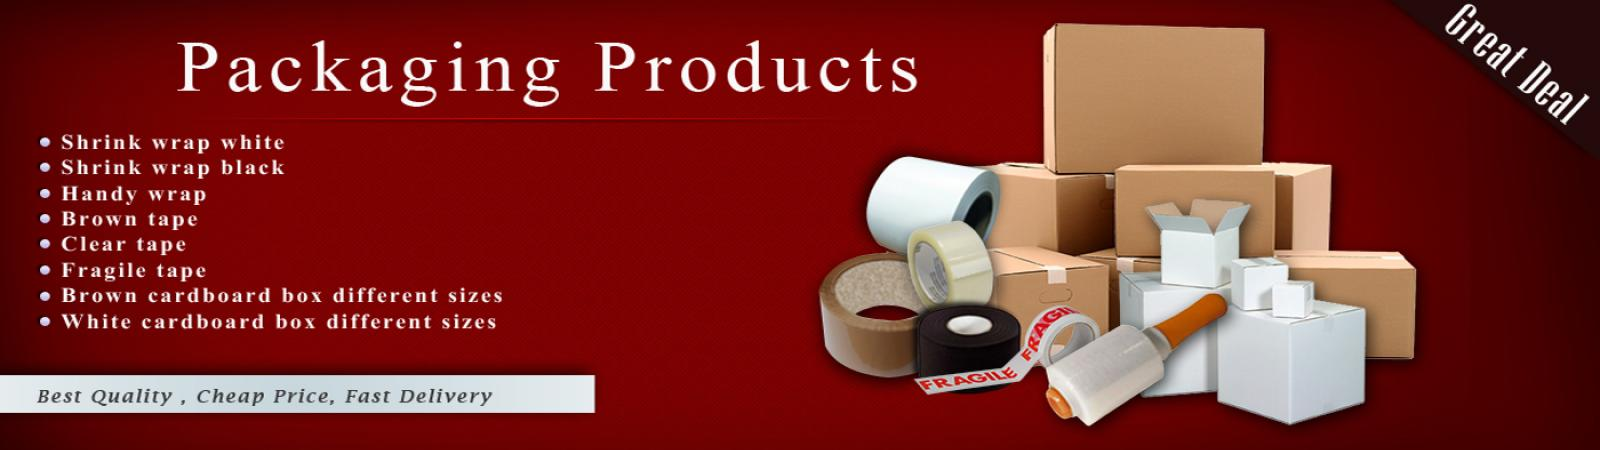 Packaging-products